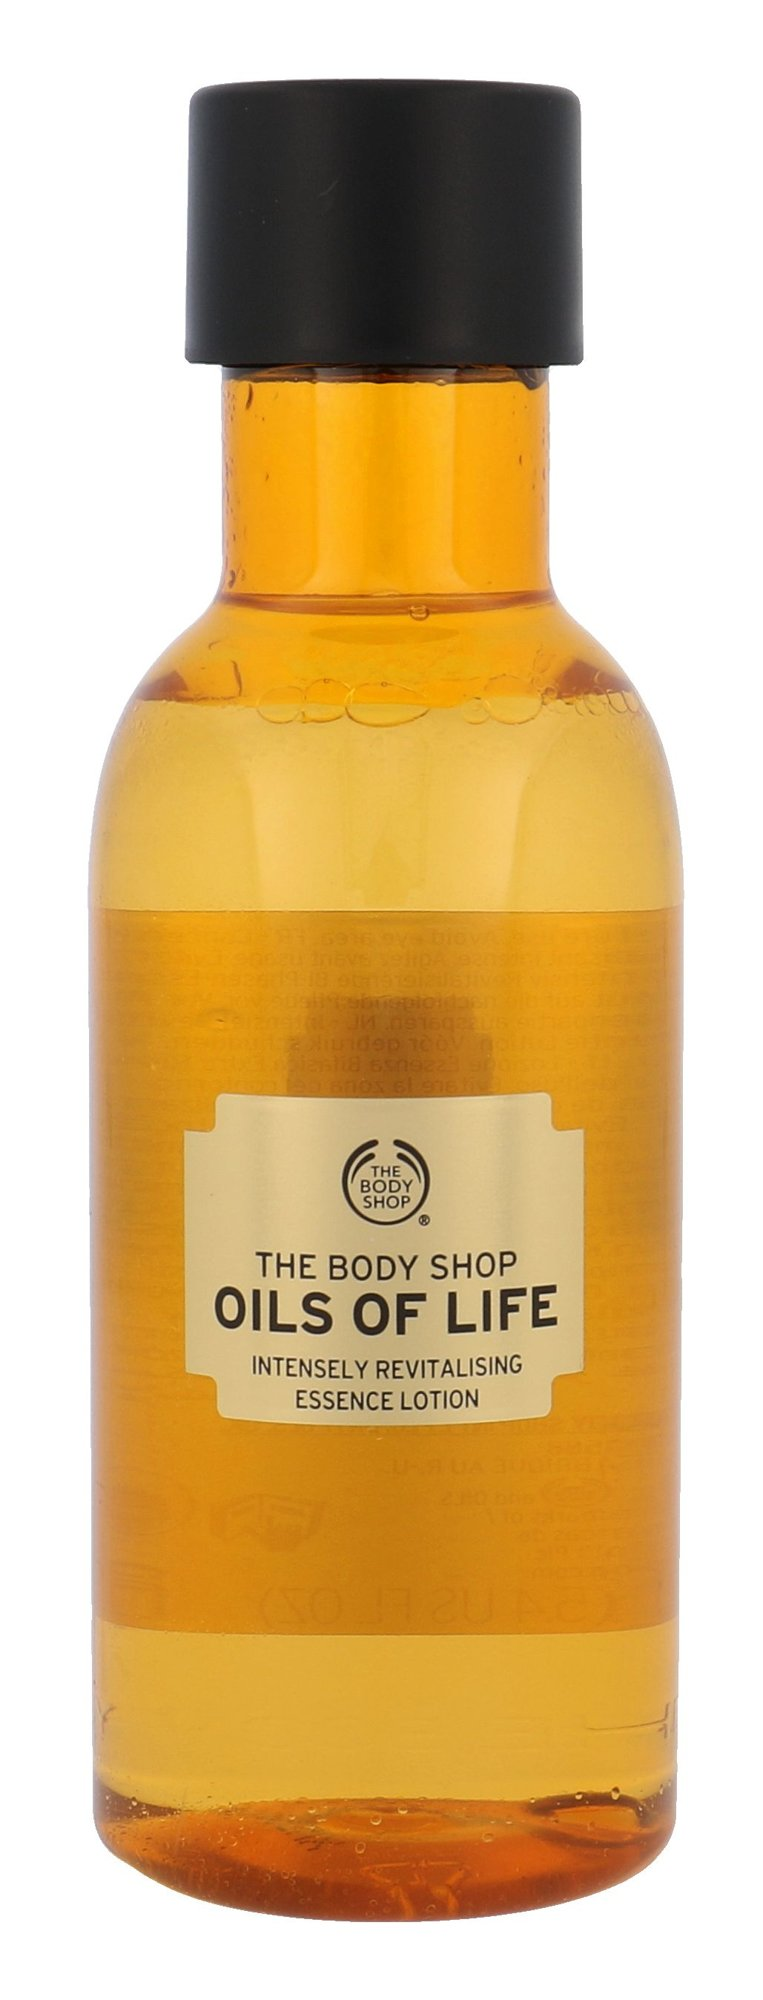 The Body Shop Oils Of Life Cosmetic 160ml